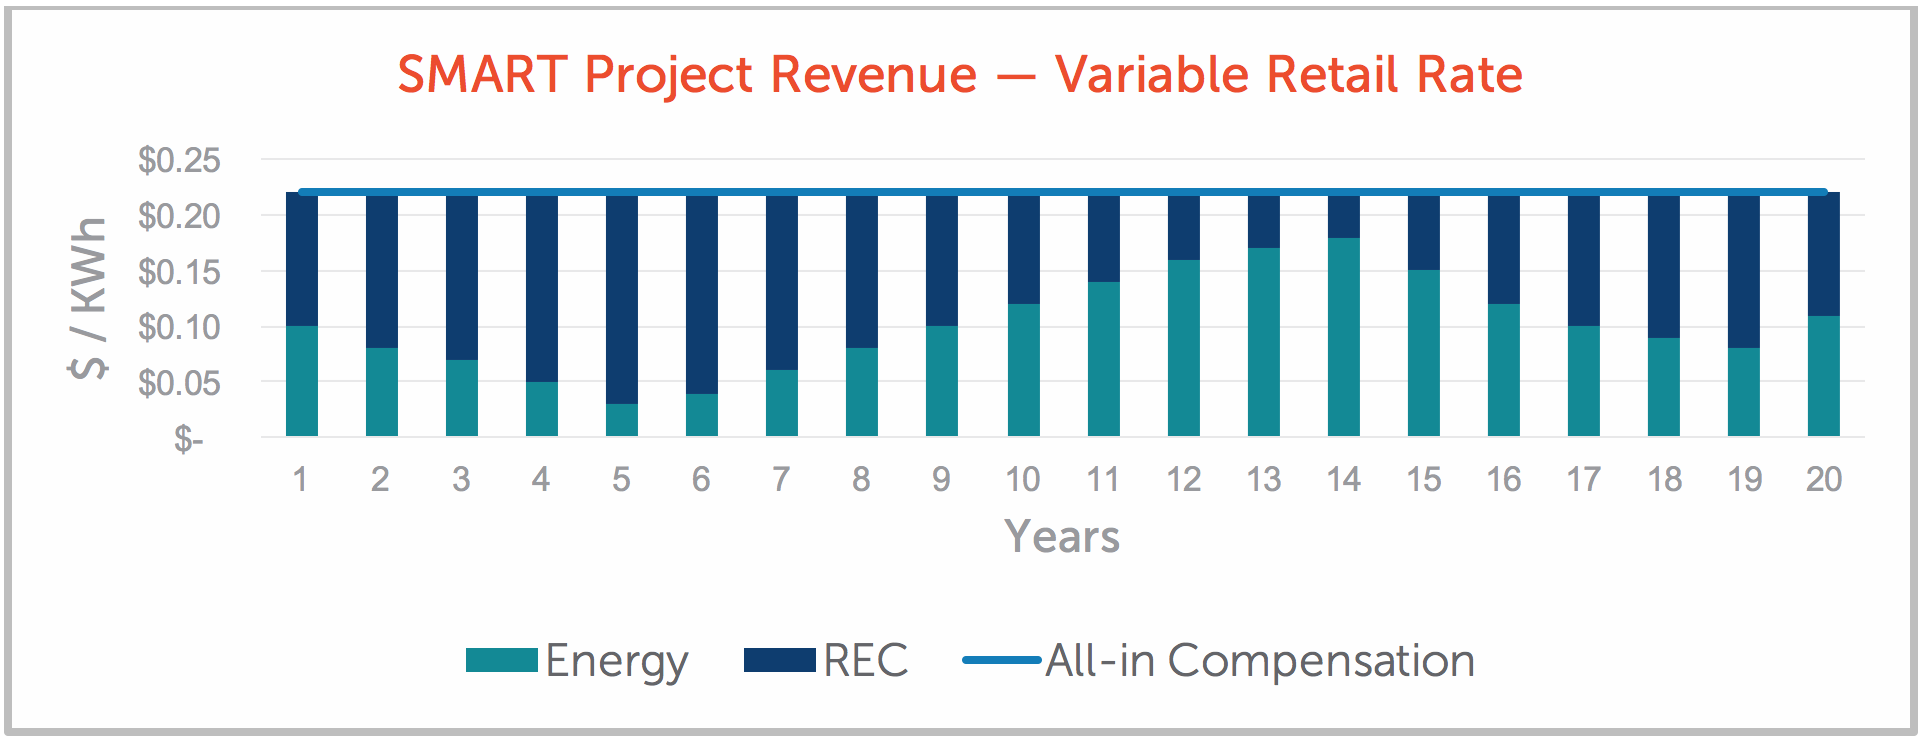 SMART Project Revenue — Variable Retail Rate